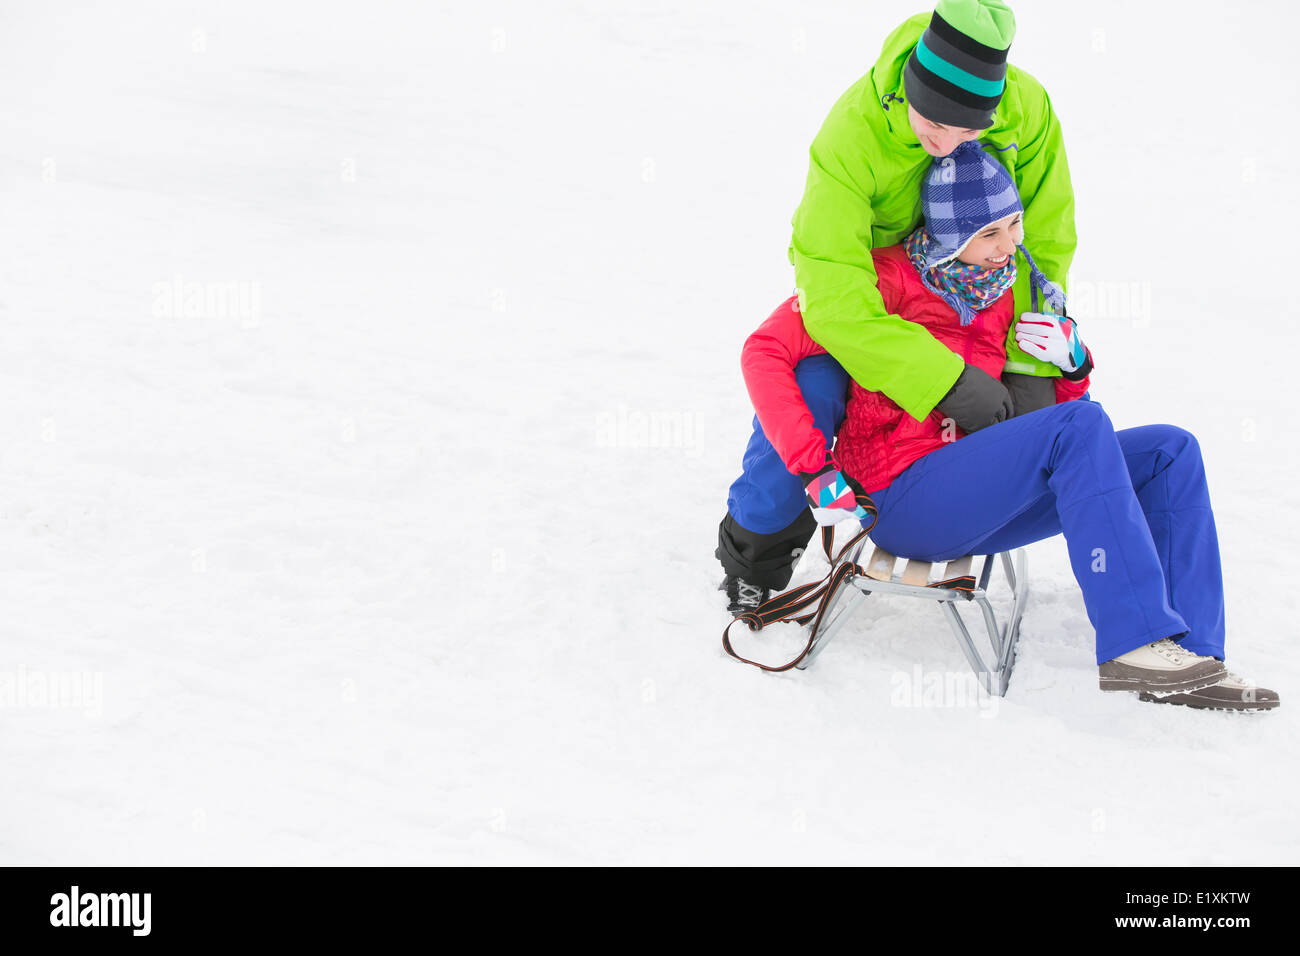 Young man embracing woman on sled in snow - Stock Image